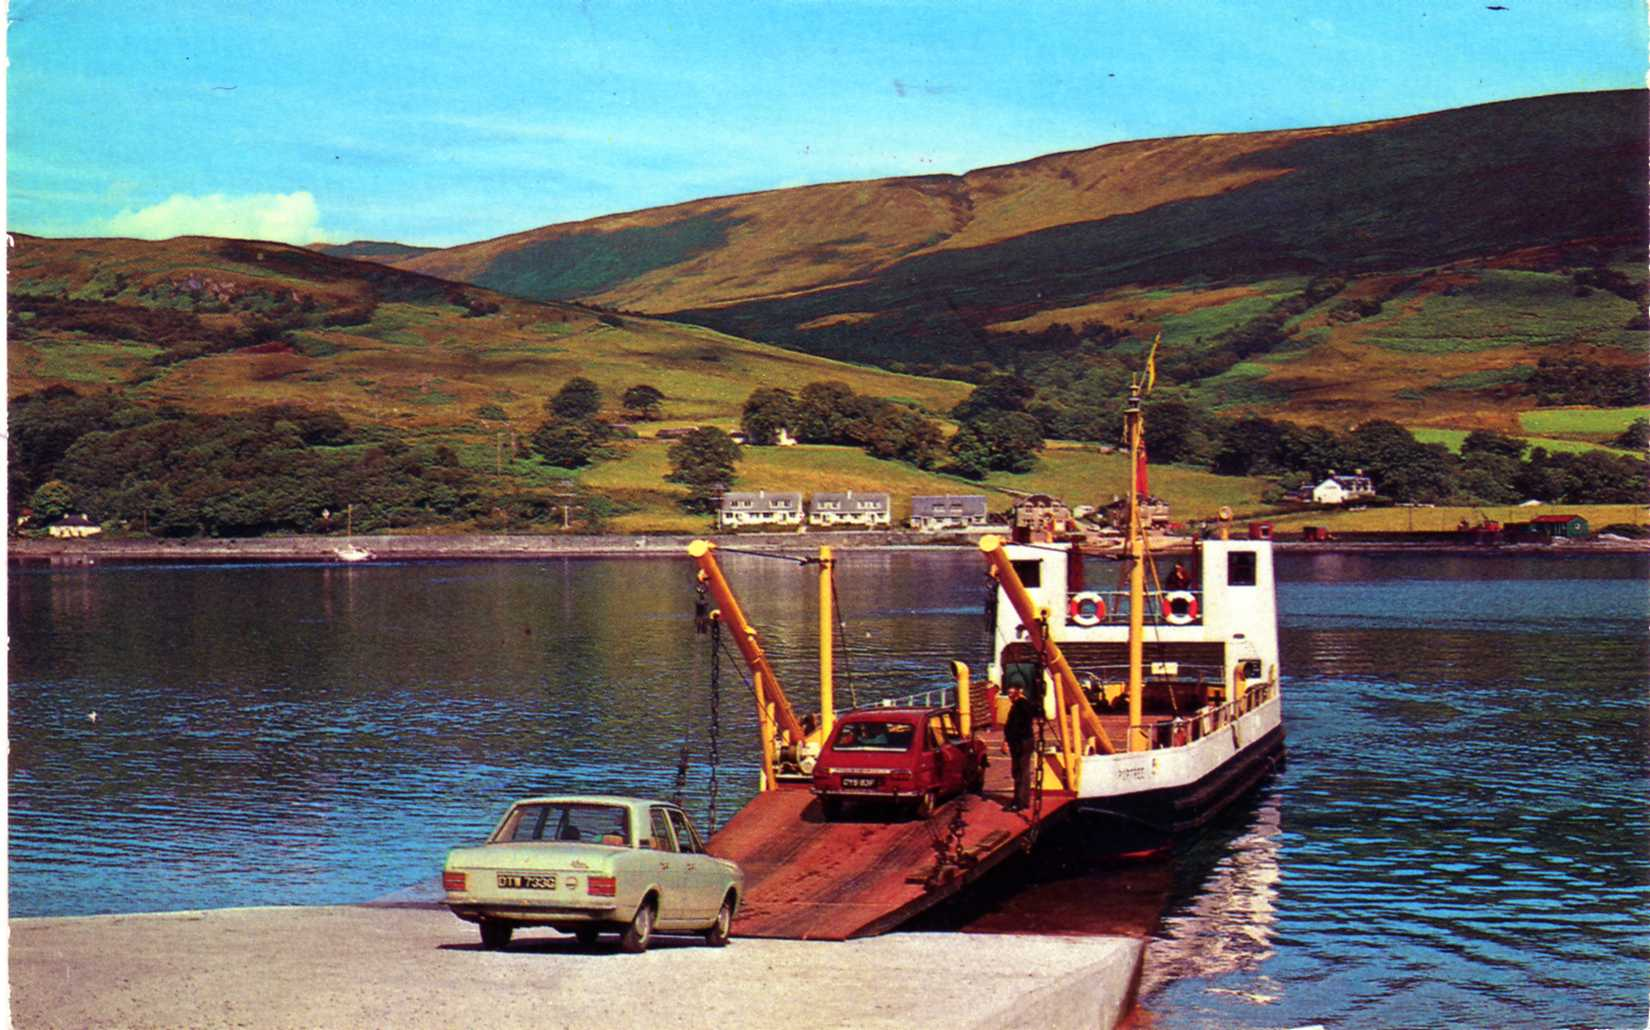 Portree at Rhubodach